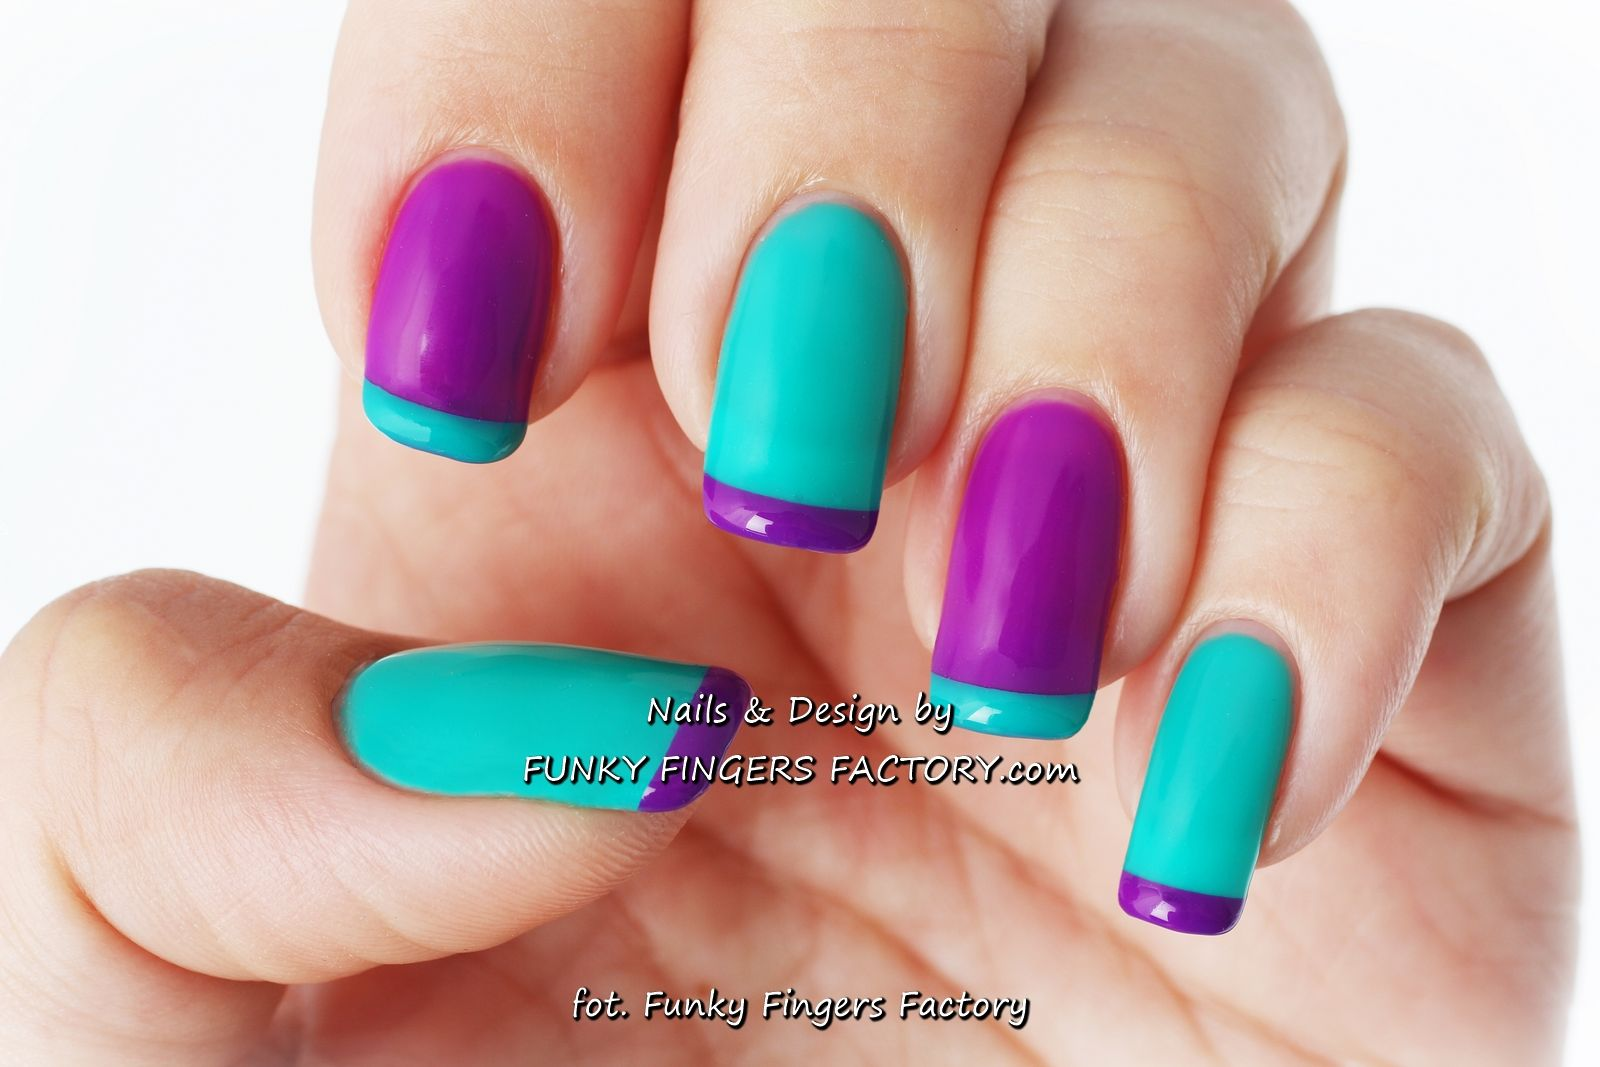 purple and teal gelish french manicure